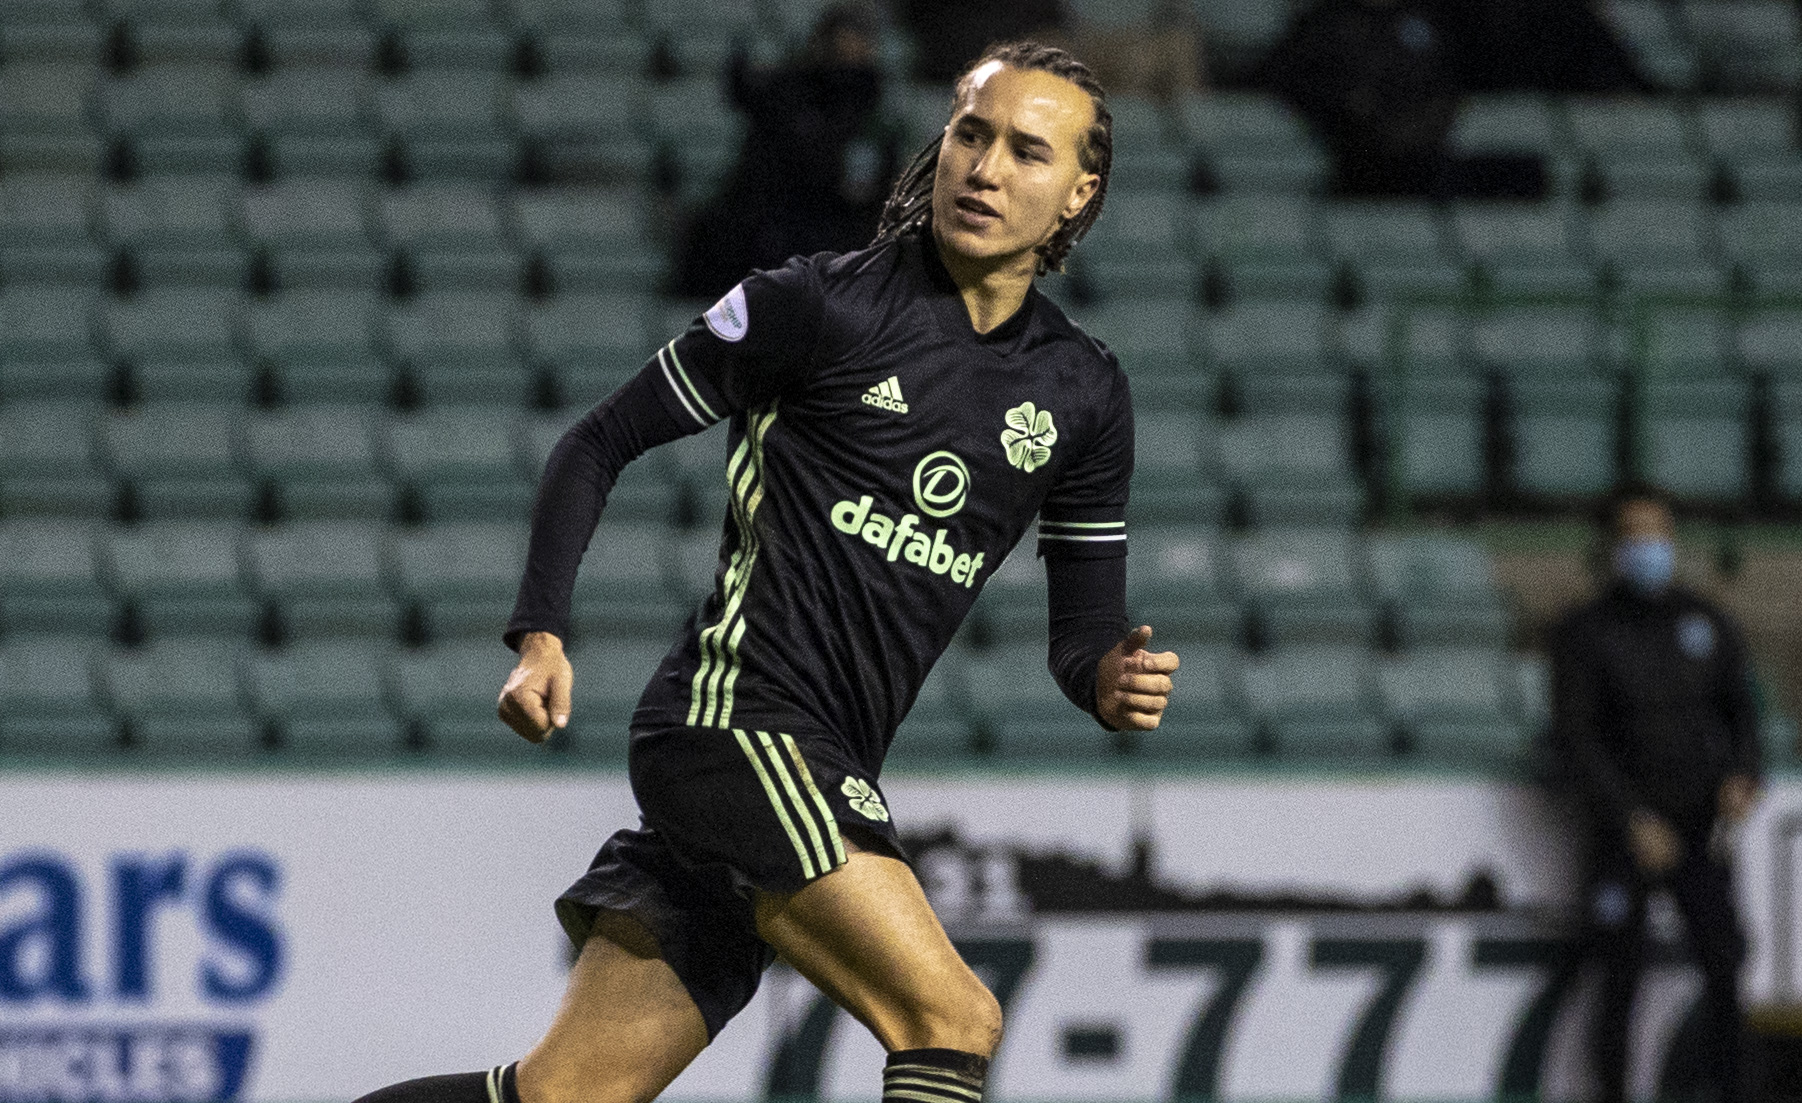 Diego Laxalt celebrates after scoring against Hibs